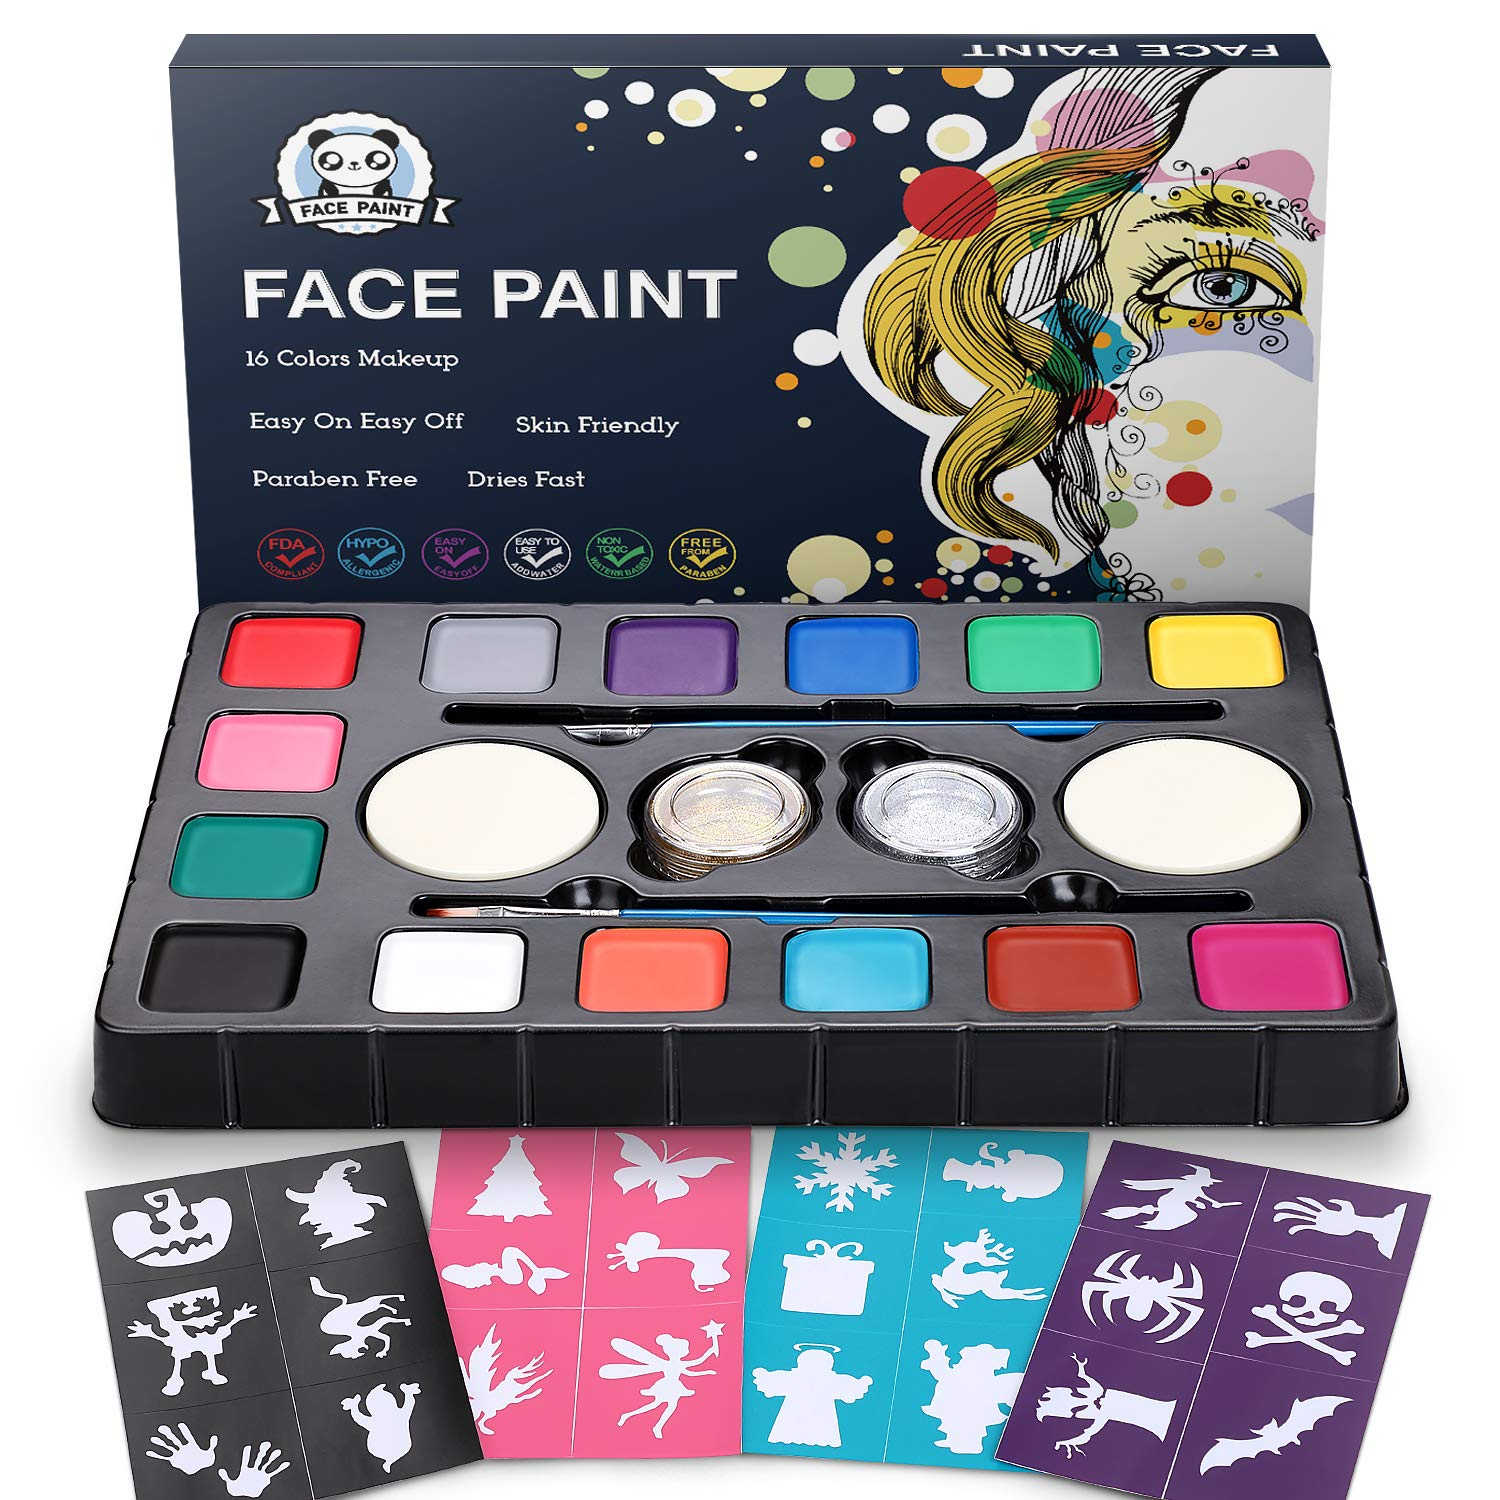 Dookey Face Paint Kit For Kids Professional Non Tocix Face Paint 14 Colors Kit With 2 Brushes 2 Sponges 2 Glitter 24 Stencils Body Makeup Paint Hypoallergenic Water Based Paints For Party Cosplay Buy